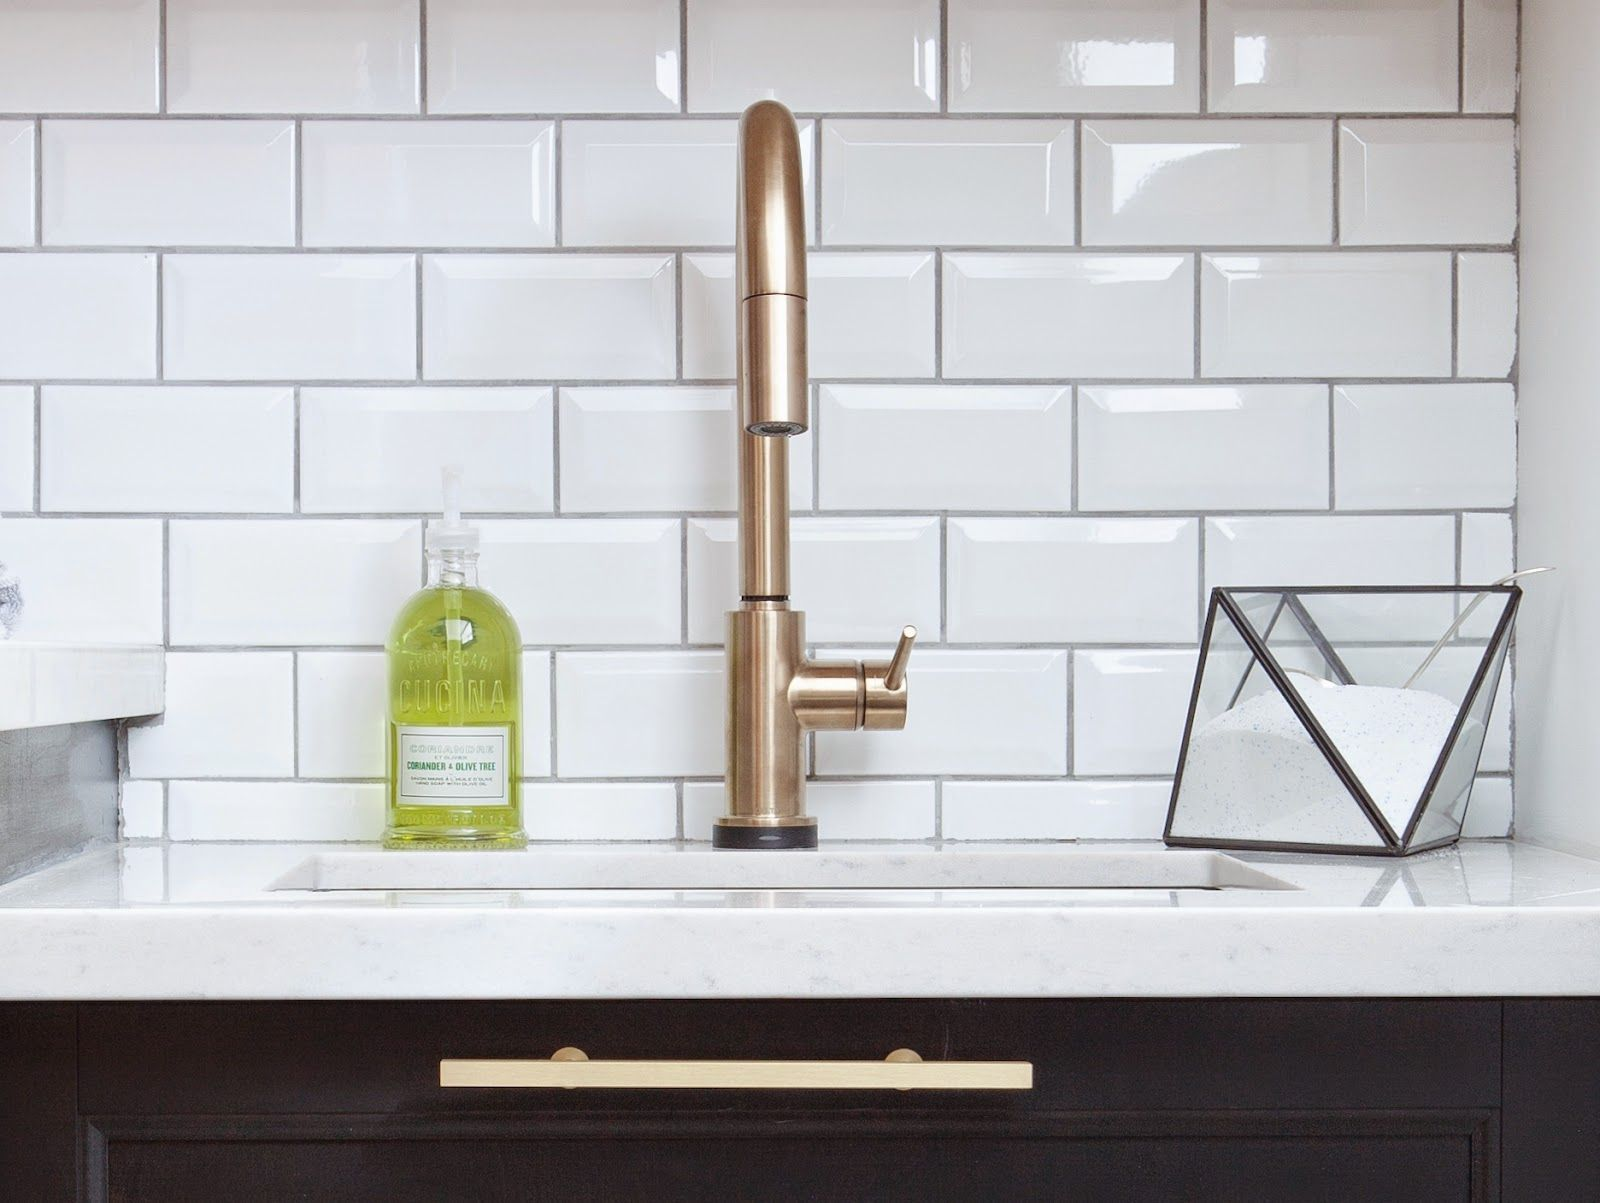 pdx reviews wayfair technology faucets bronze delta widespread diamond seal bathroom champagne and home drain trinsic assembly improvement with faucet kitchen